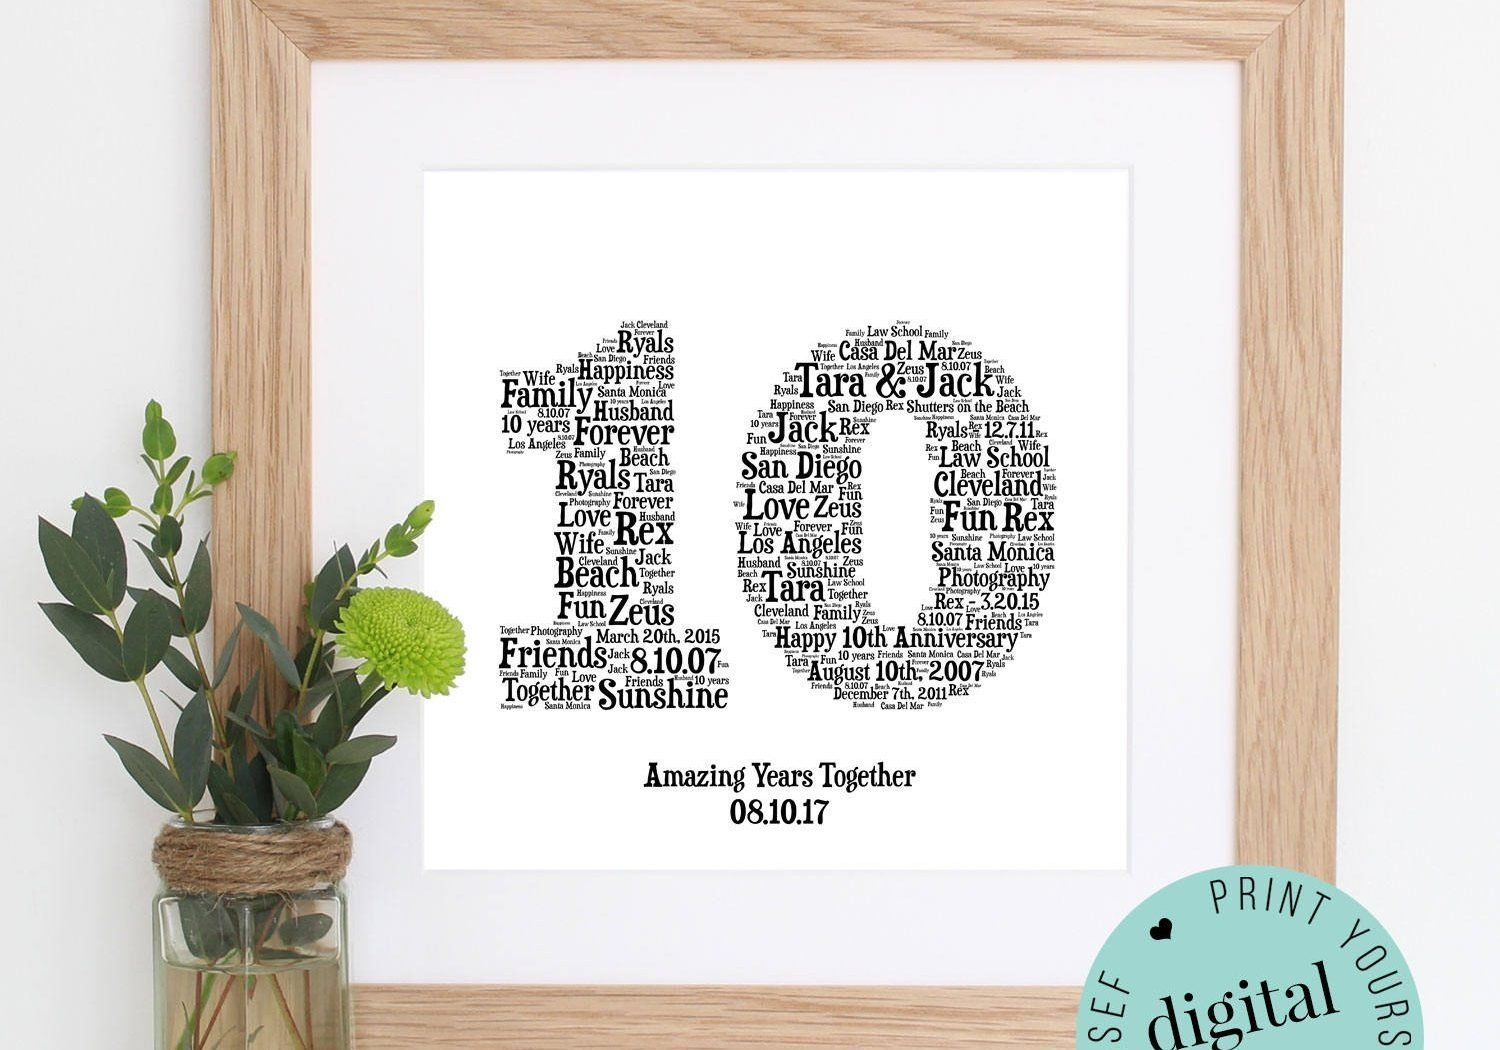 10 Awesome 10 Year Anniversary Ideas For Him anniversary ideas for husband 104 best 10 year wedding anniversary 2021